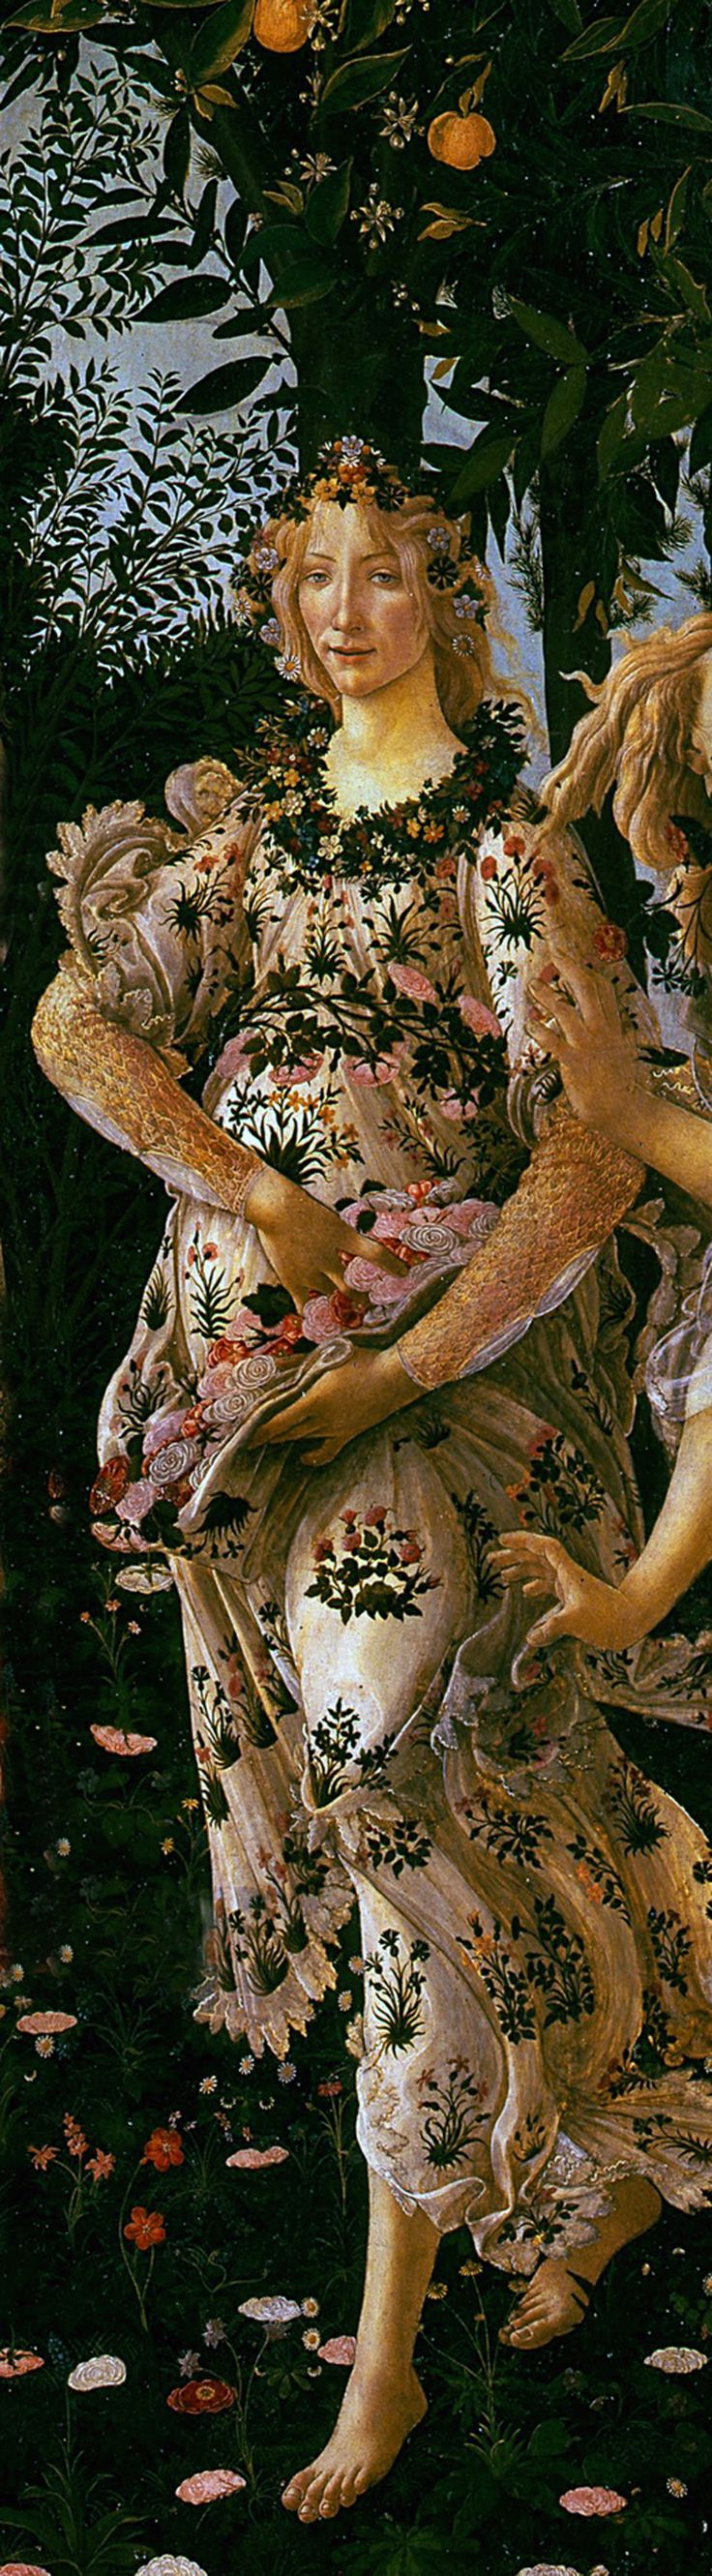 Detail from 'La Primavera - An Allegory of Spring'' by Sandro Botticelli, c.1482